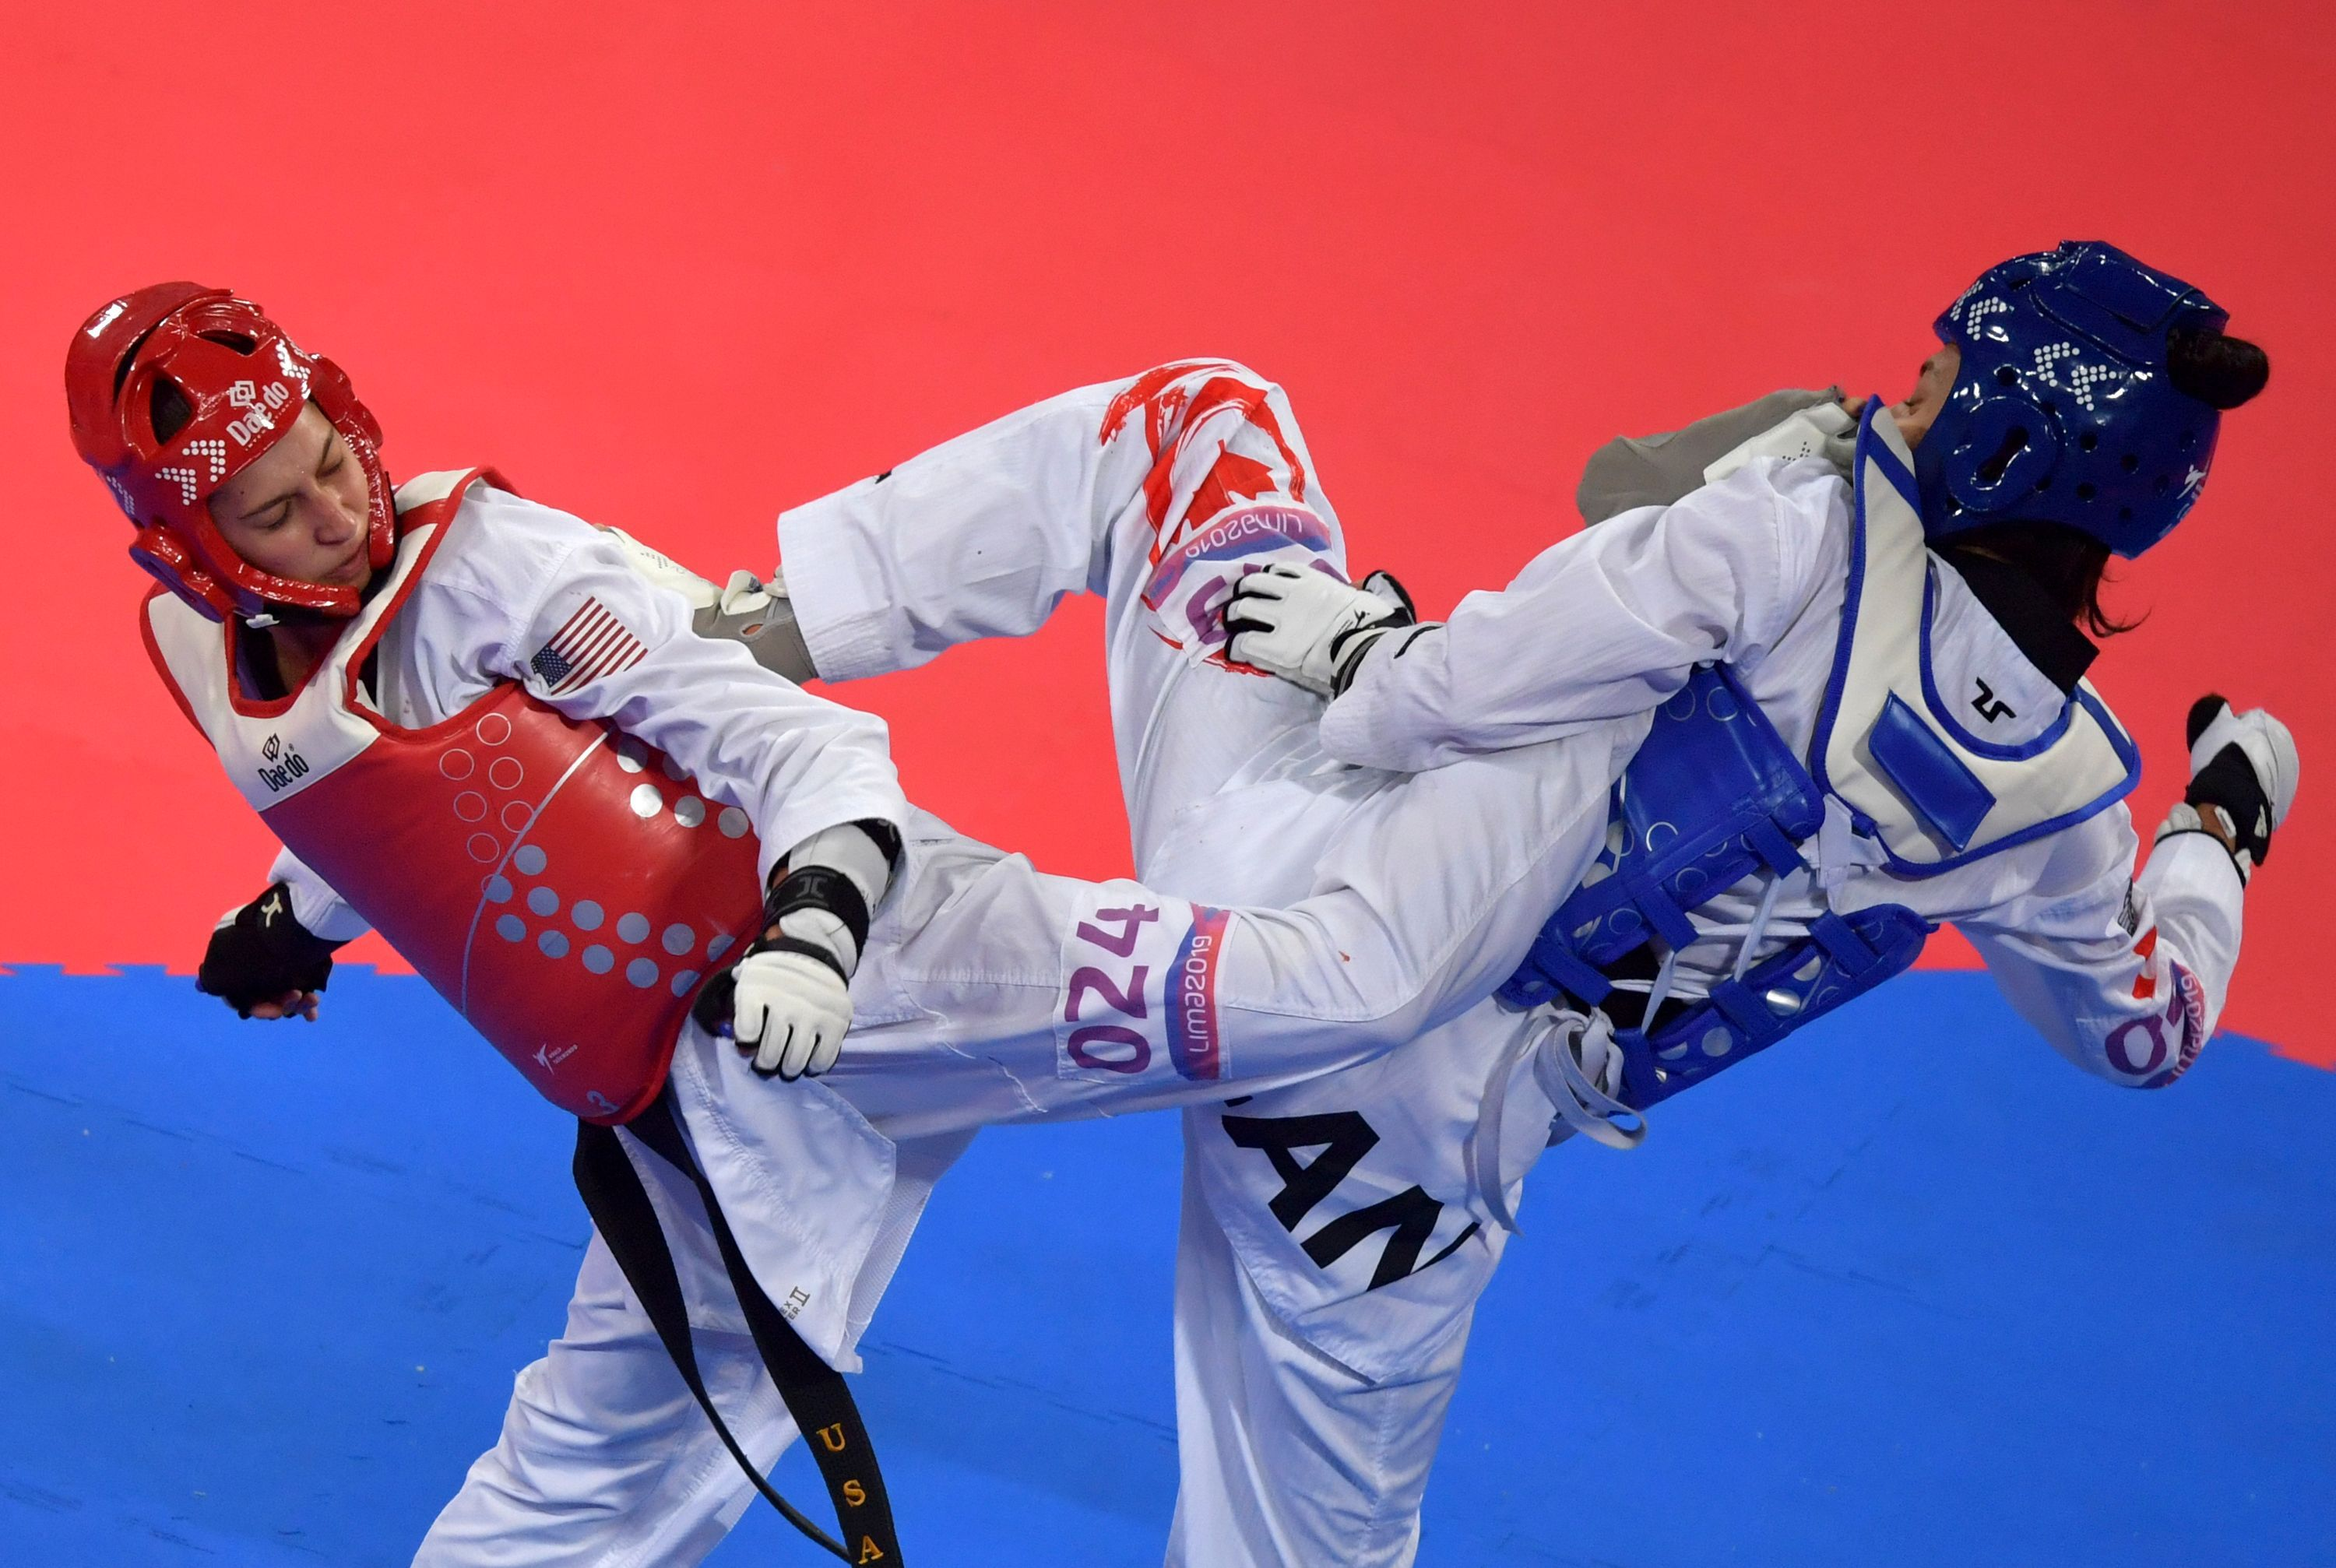 Anastasija Zolotic, left, competes in the Pan-American Games in 2019. Photo: Luis Acosta/AFP via Getty Images